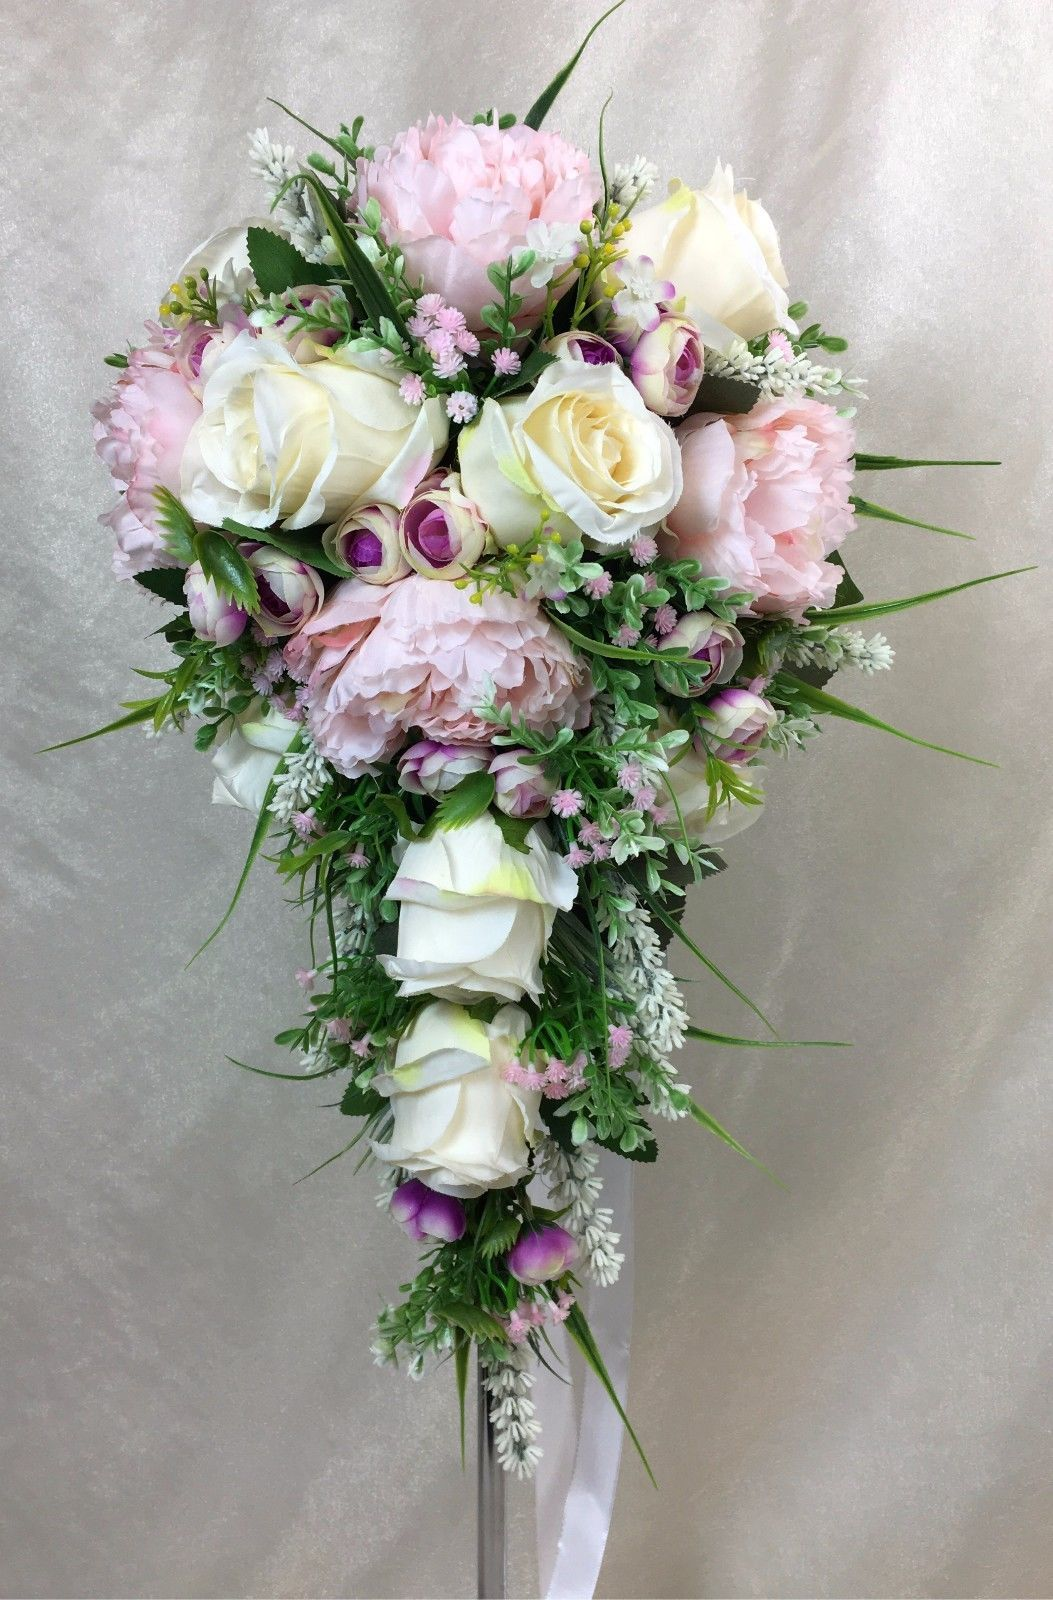 Artificial Silk Flower Ivory Rose/Lavender L/Pink Peony